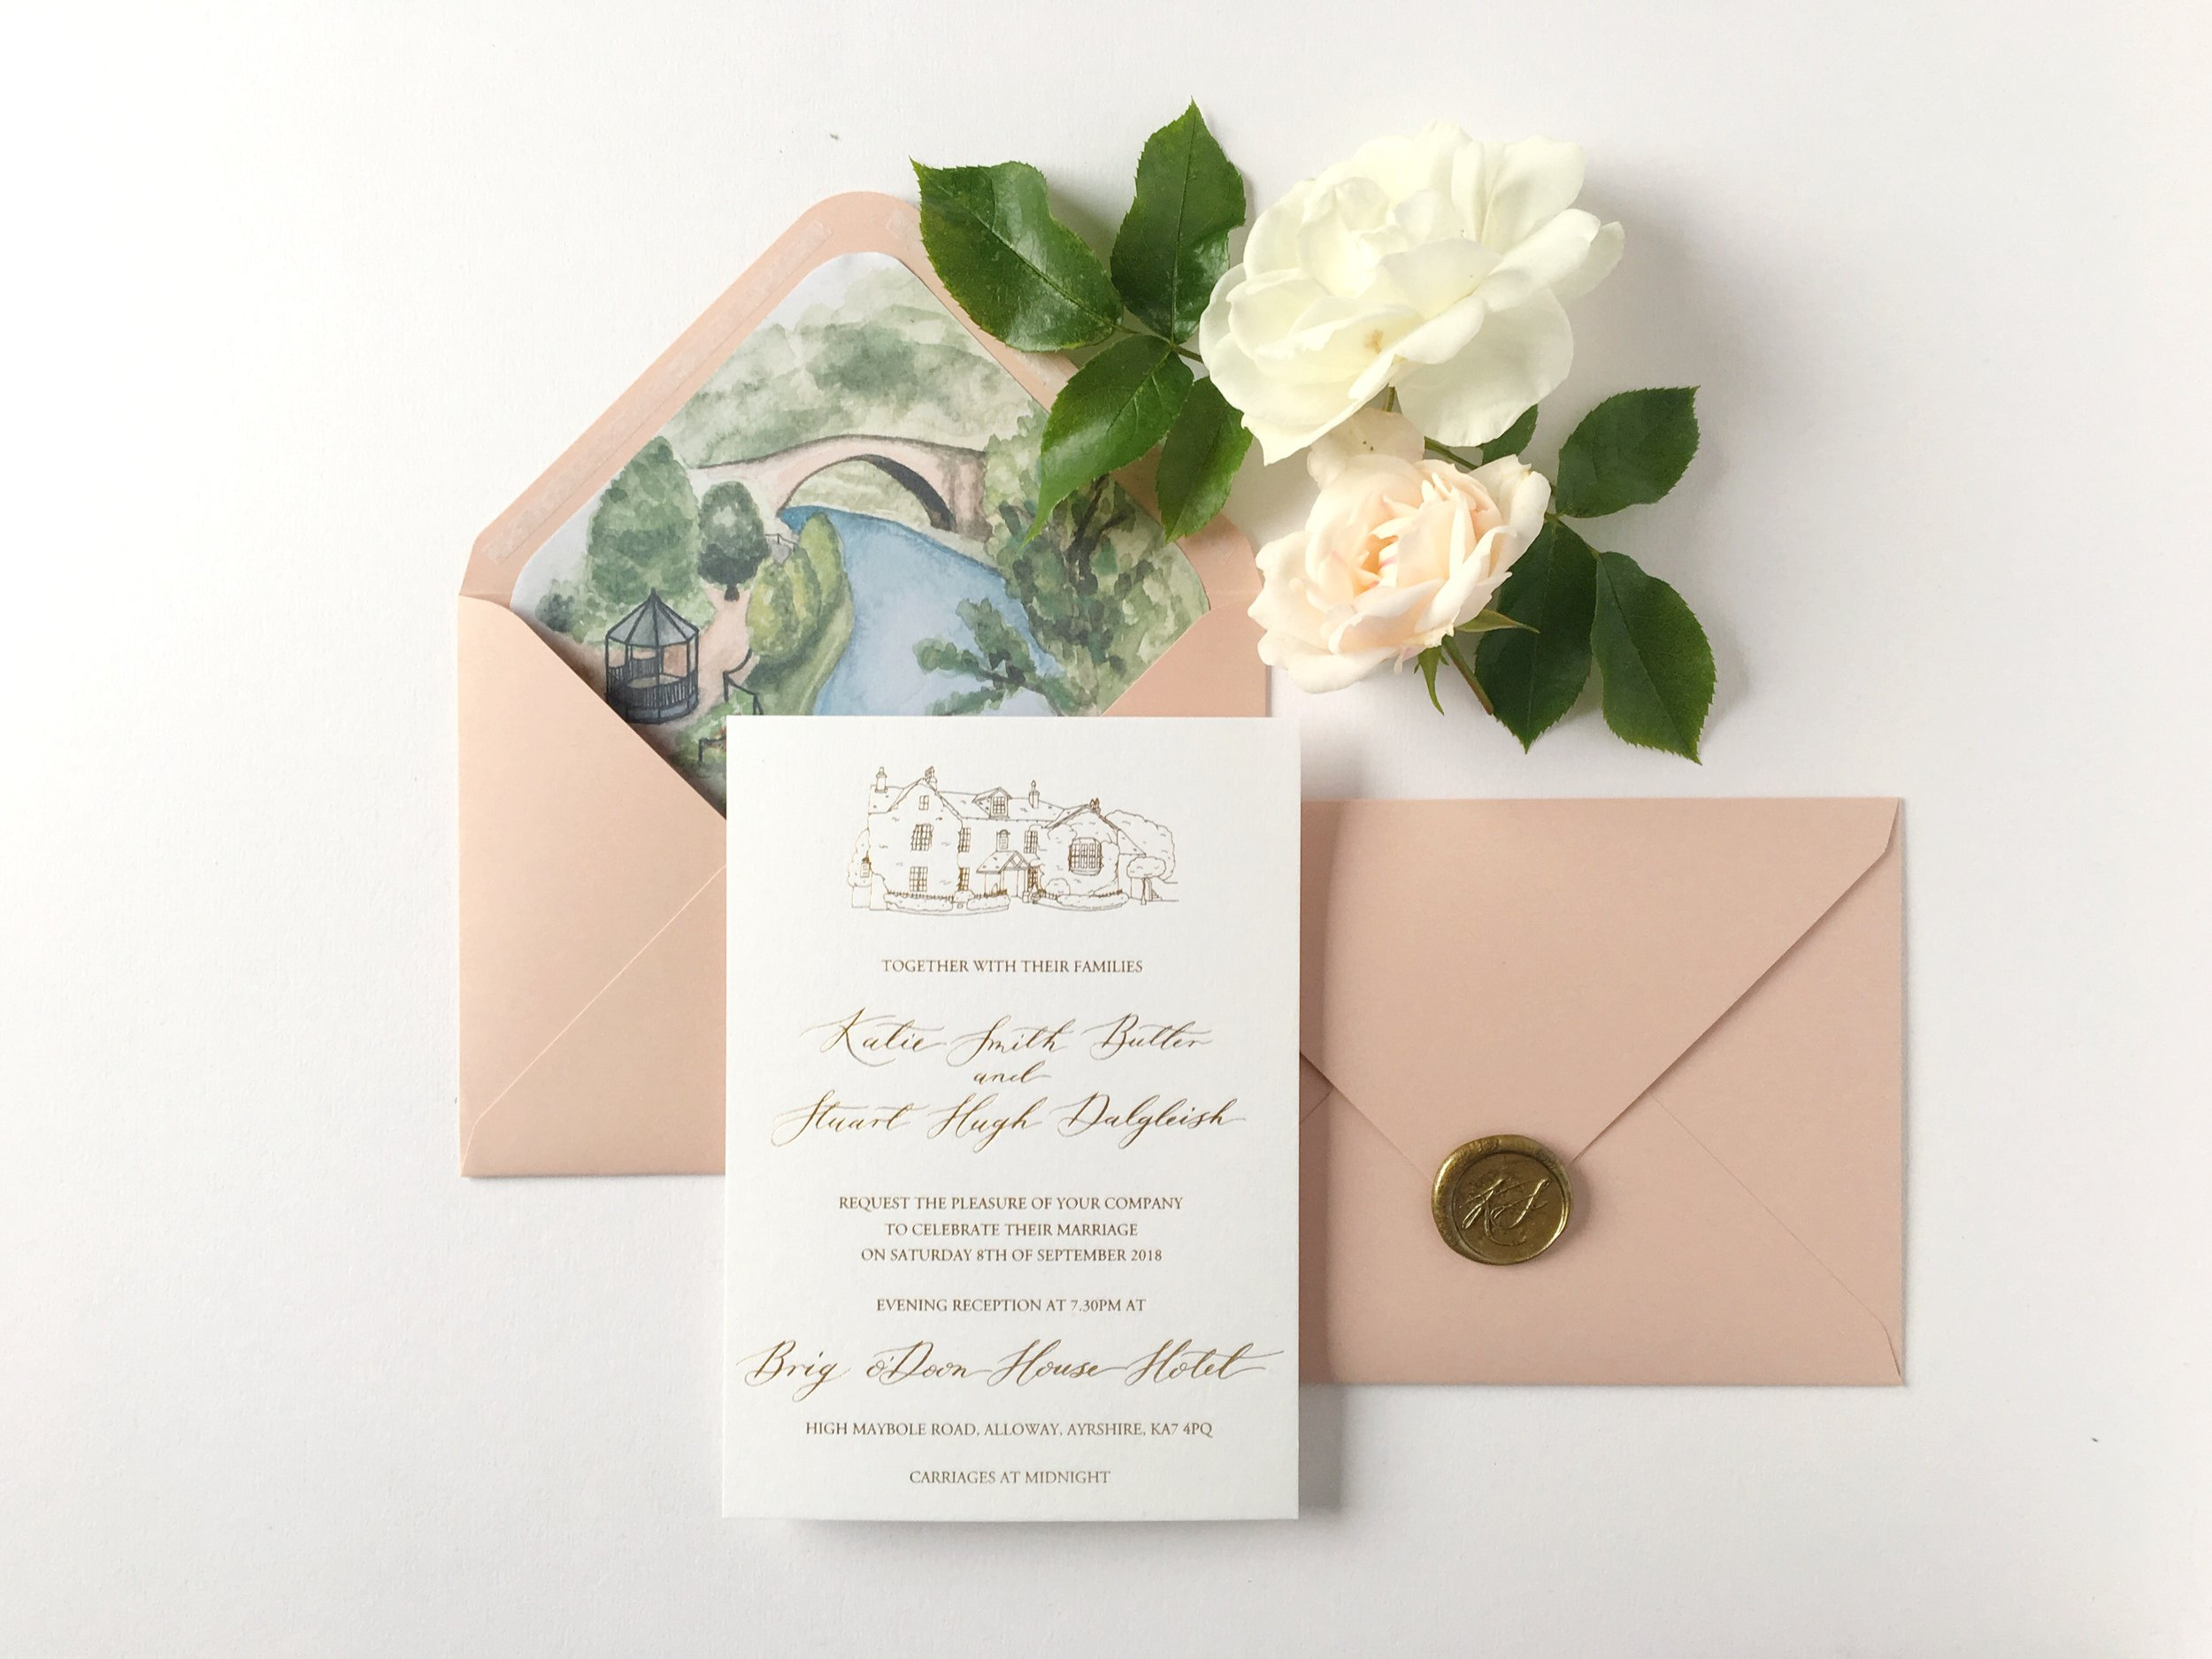 Custom Invitations with Calligraphy